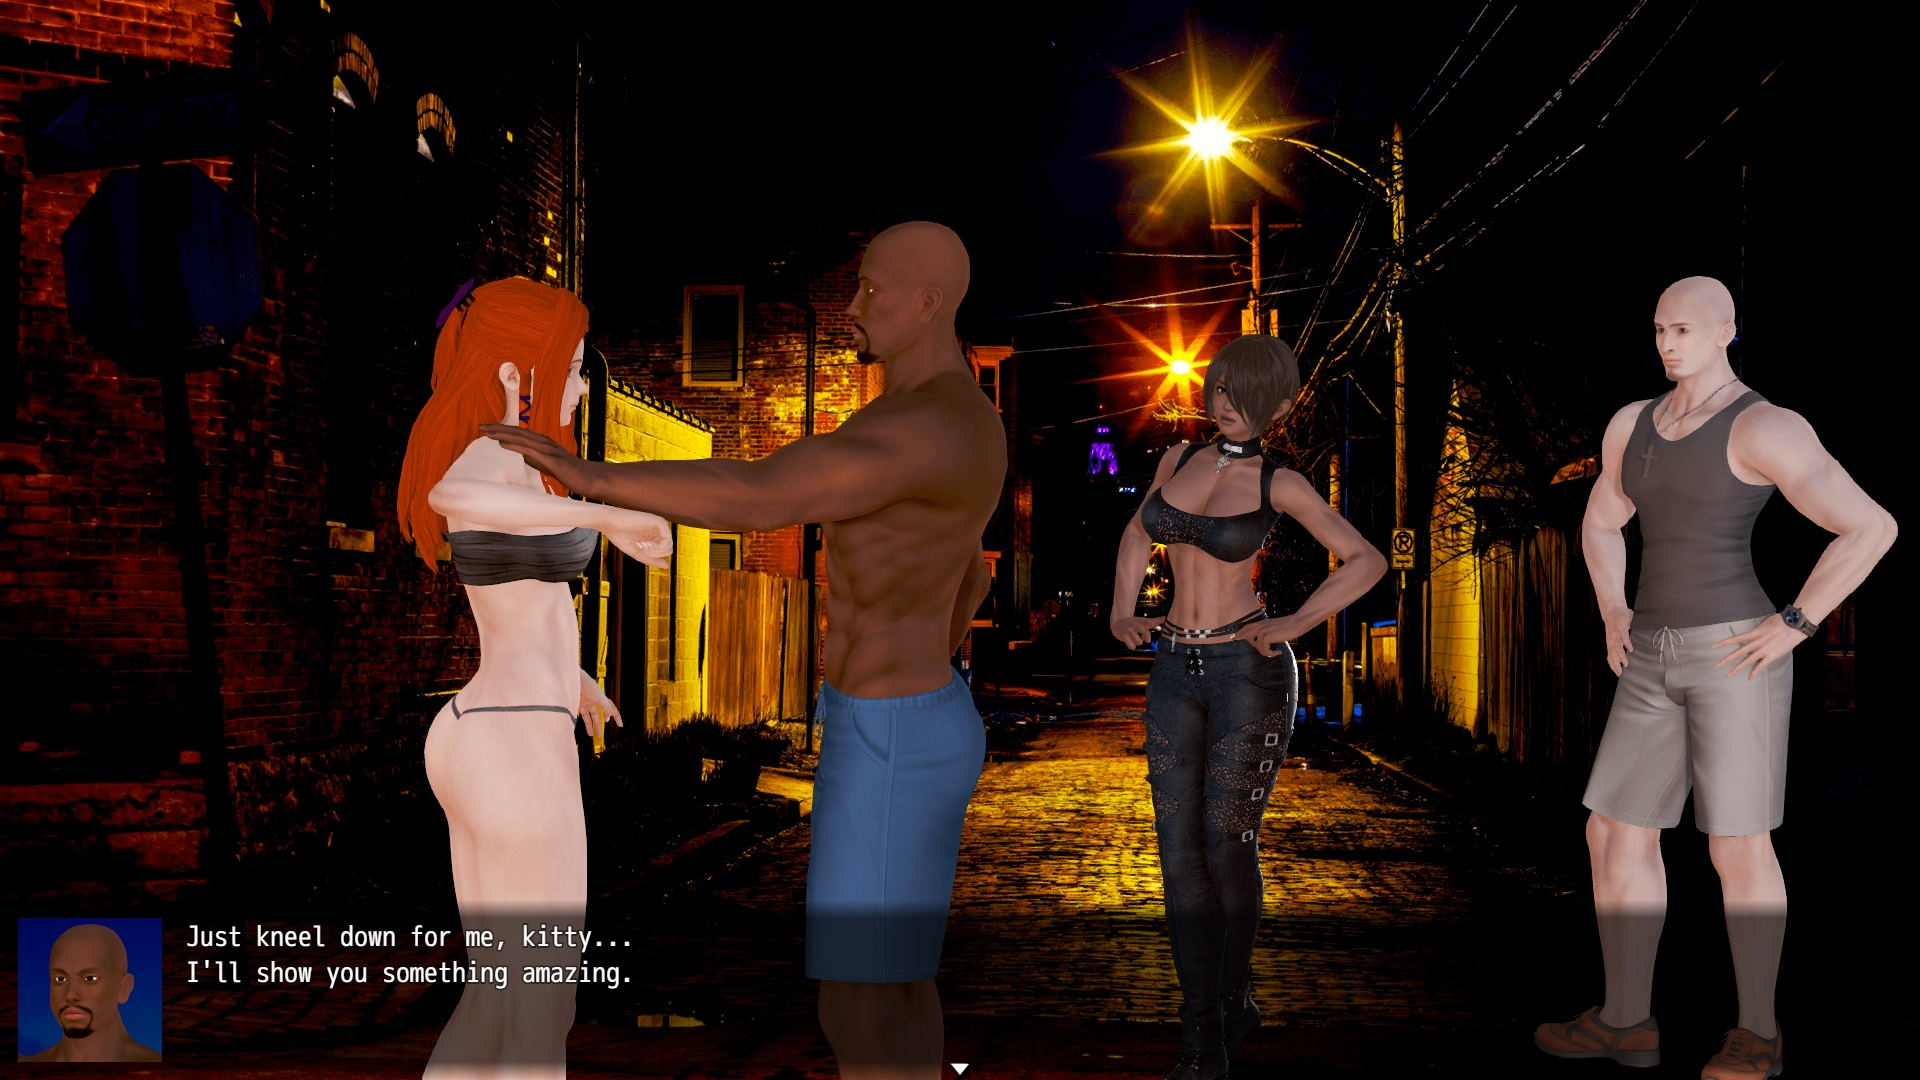 The Corruption of Emma screenshot 1